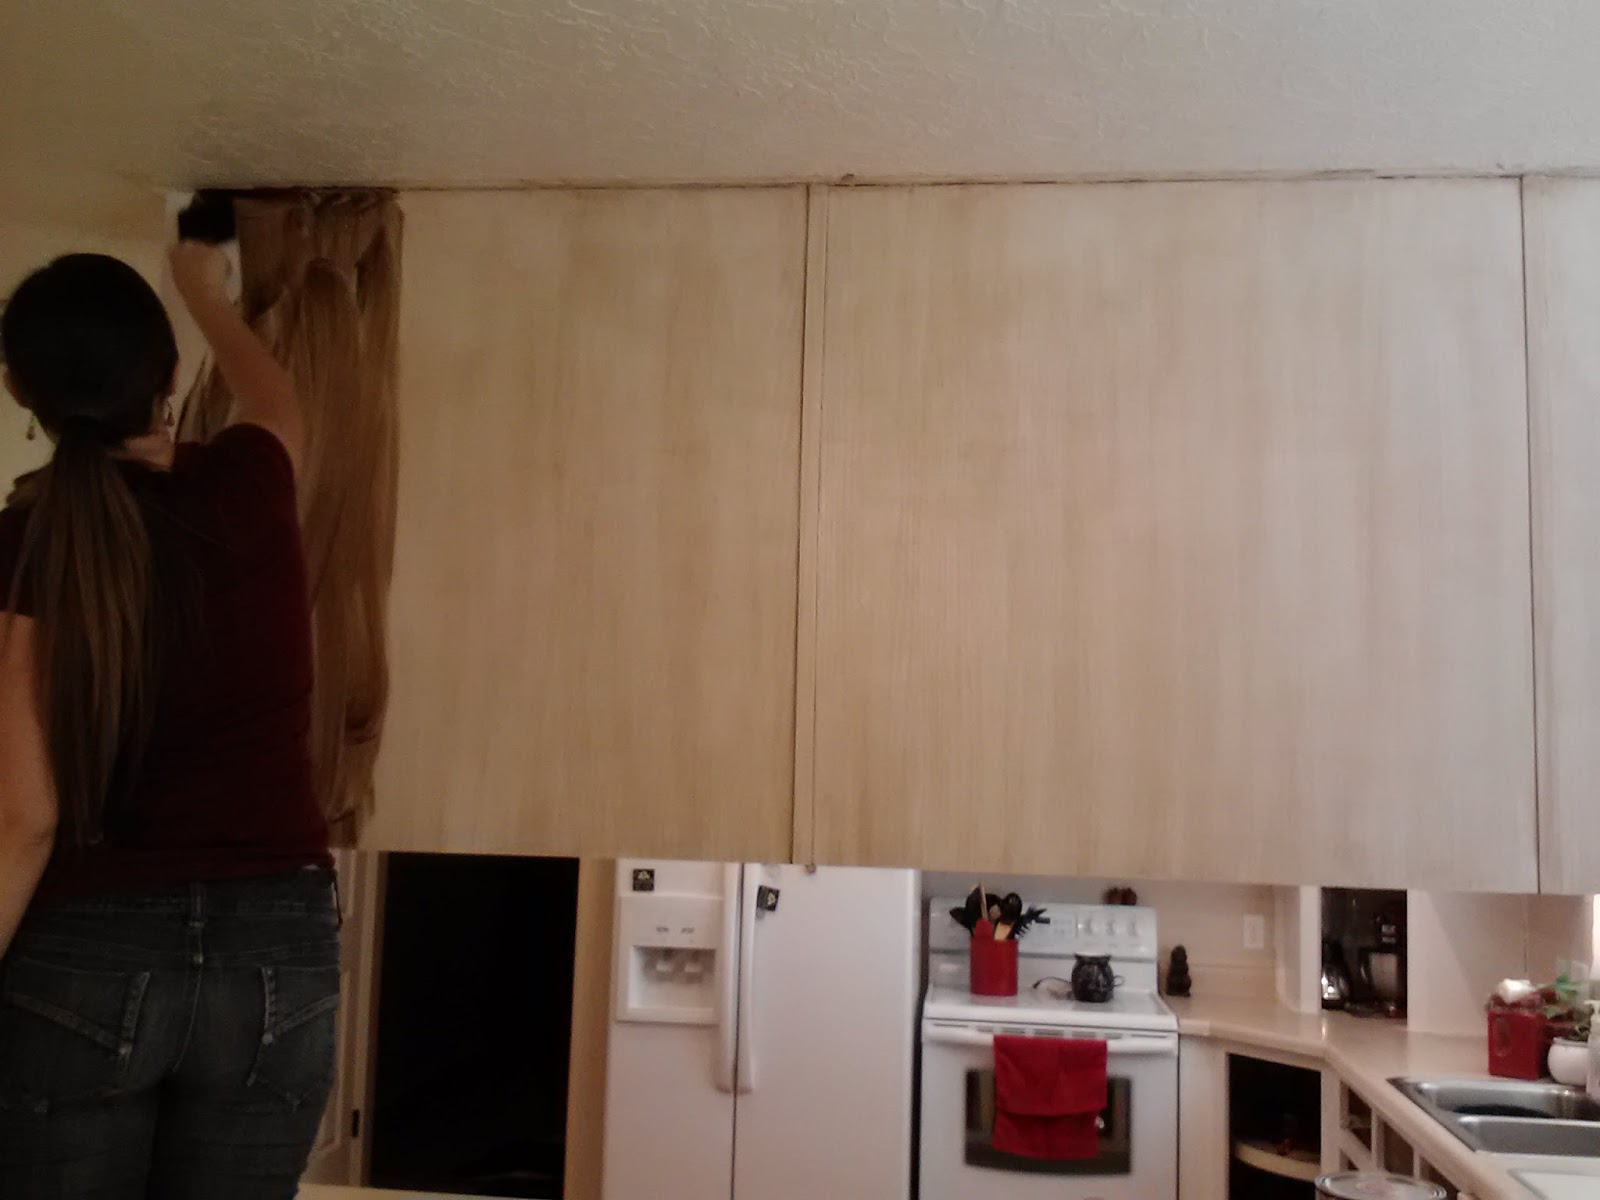 How To Paint Kitchen Cabinets Without Streaks The Petersen Project How I Painted My Kitchen Cabinets